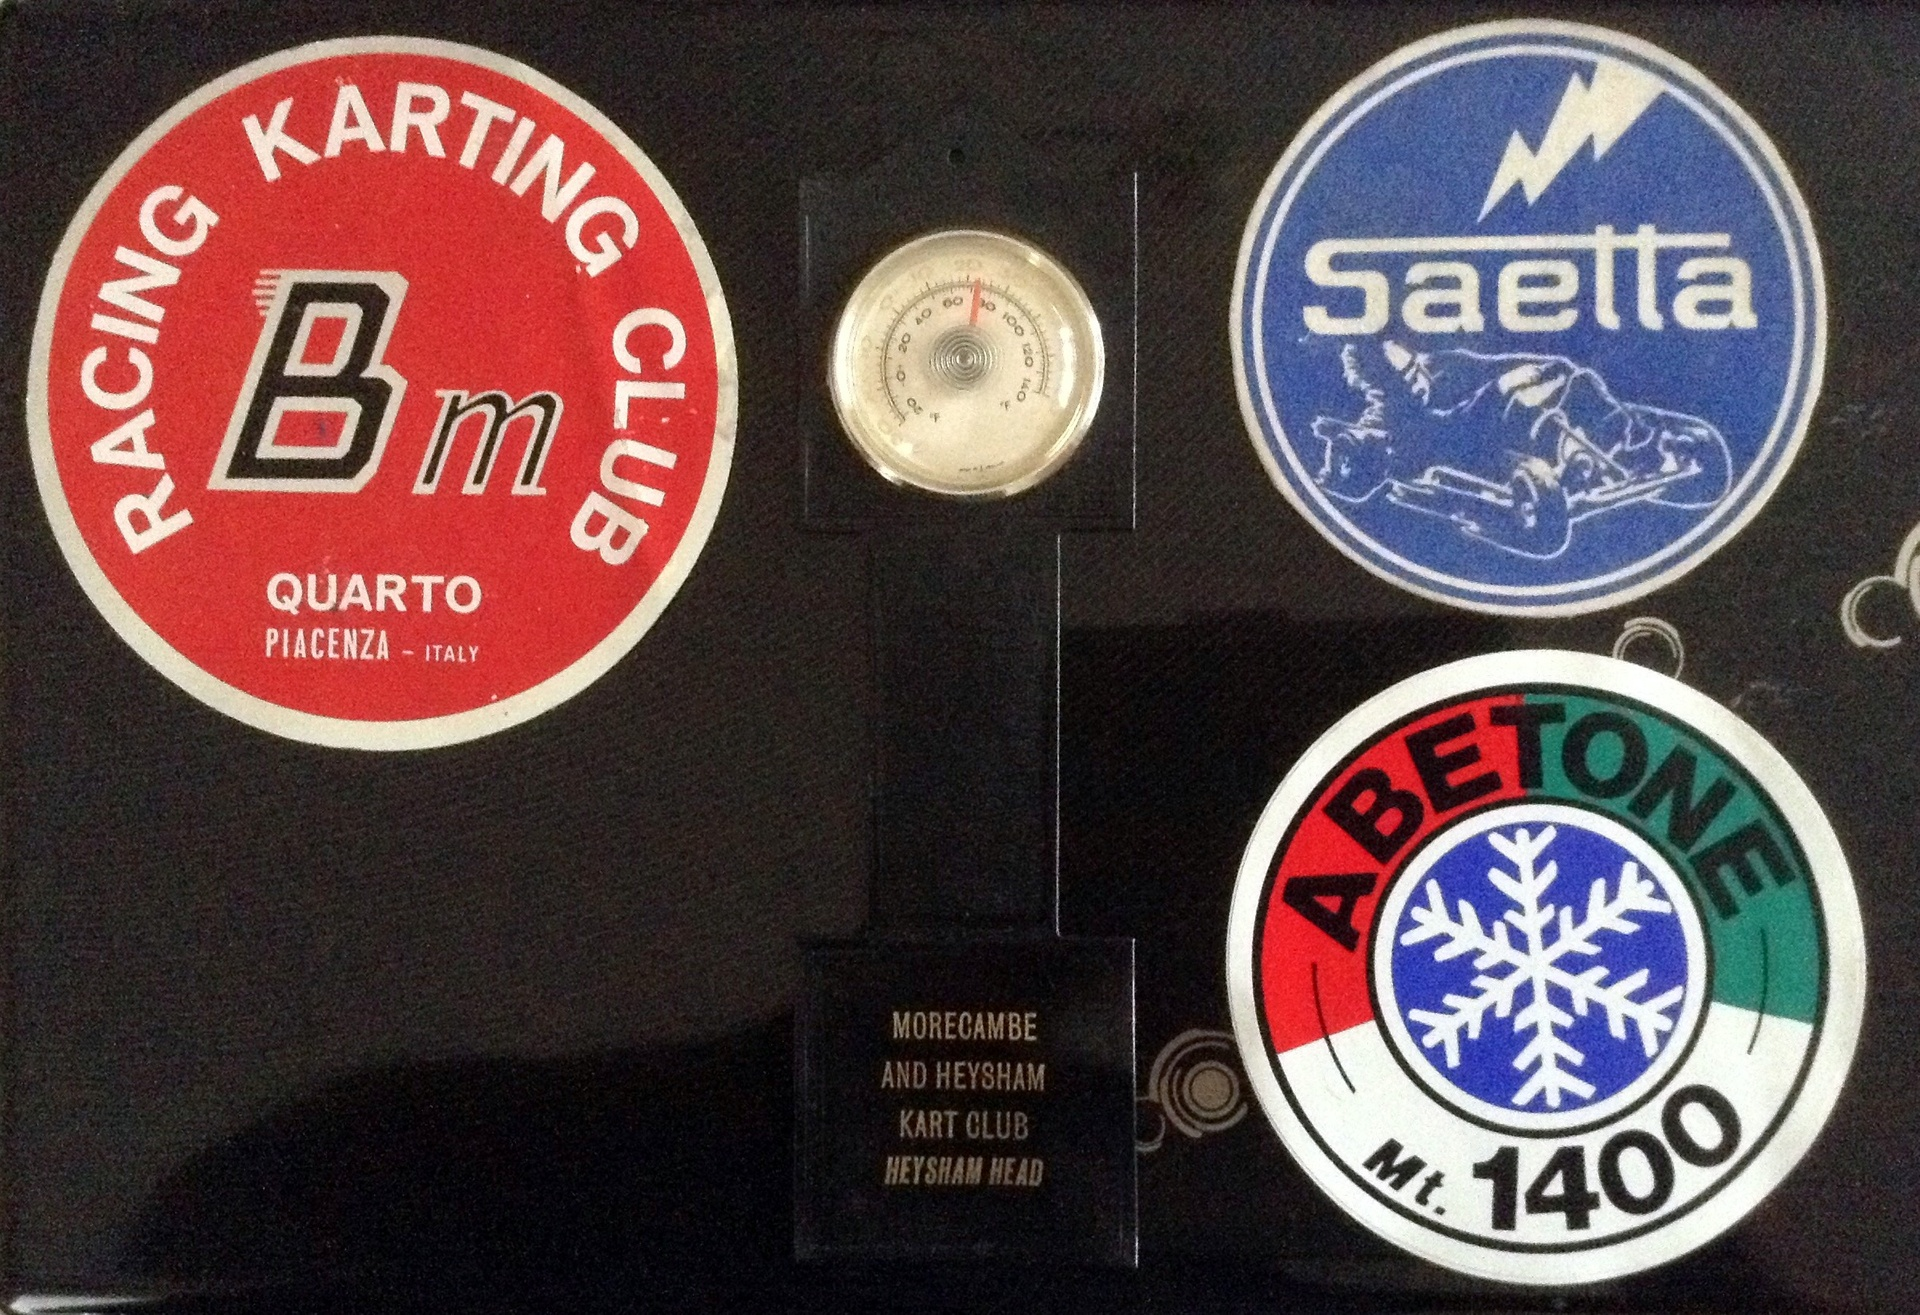 DONATED BY DONALD PIPER, STICKERS AND A MORECAMBE KART CLUB BAROMETER